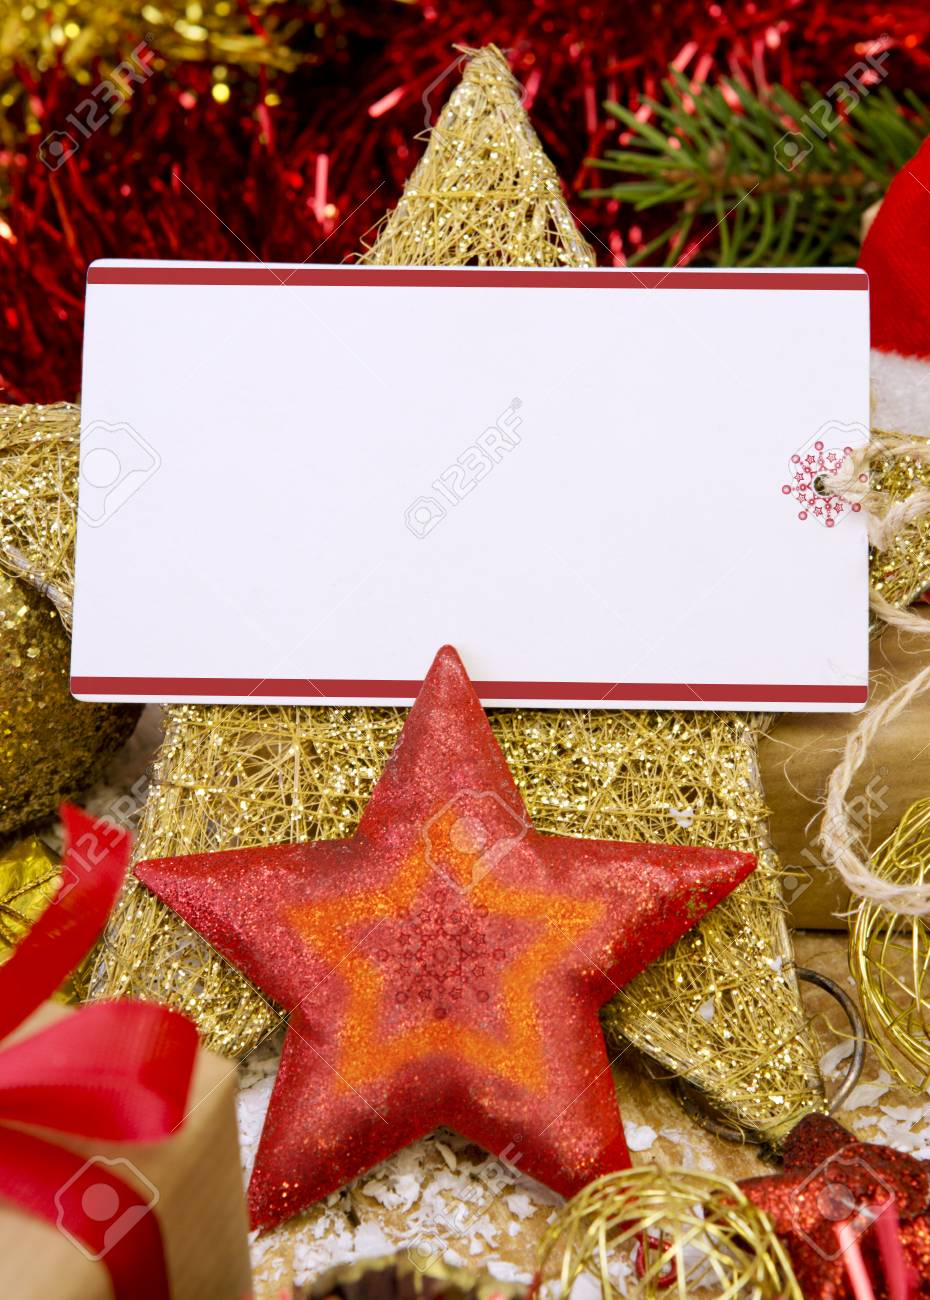 merry christmas and a happy new year cardblank christmas card with giftssanta